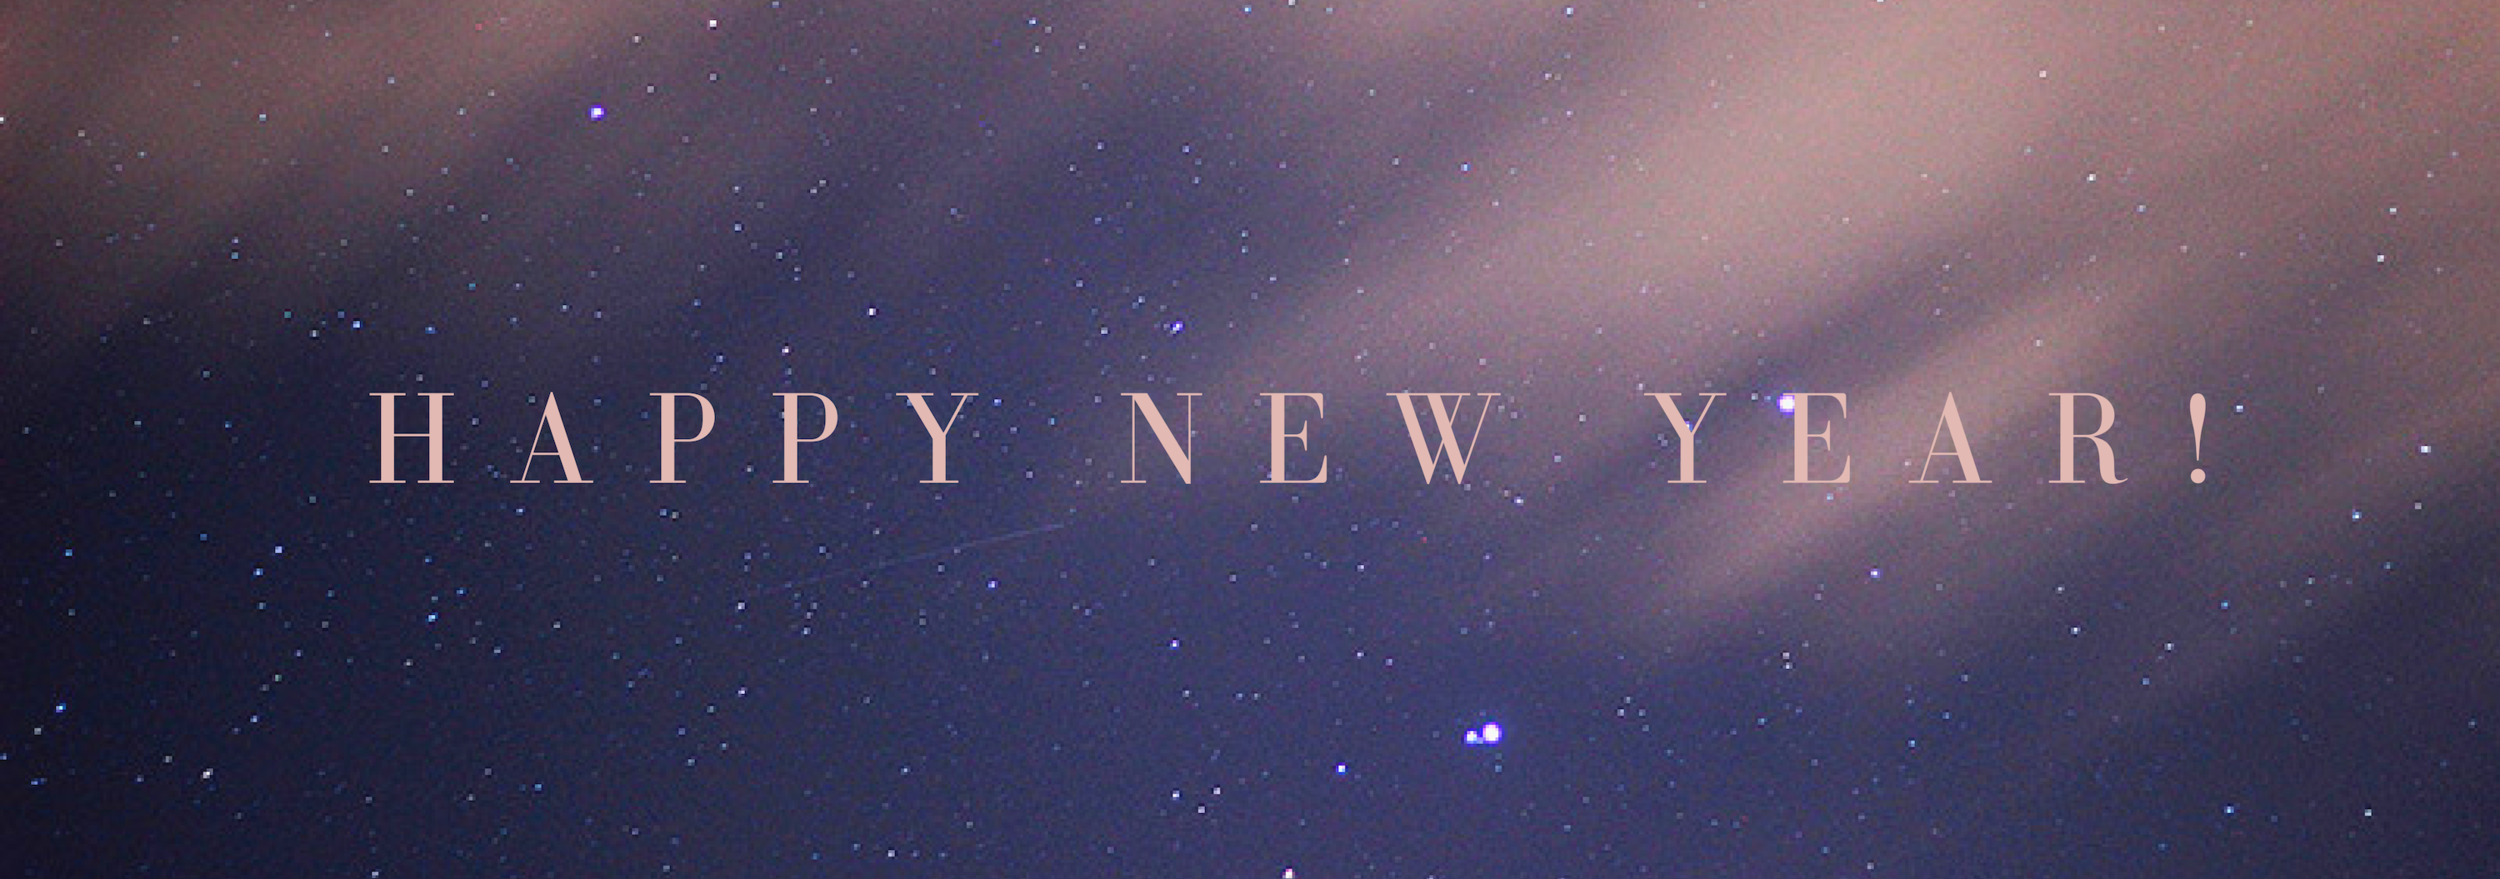 181231 tumblr banner hny.png